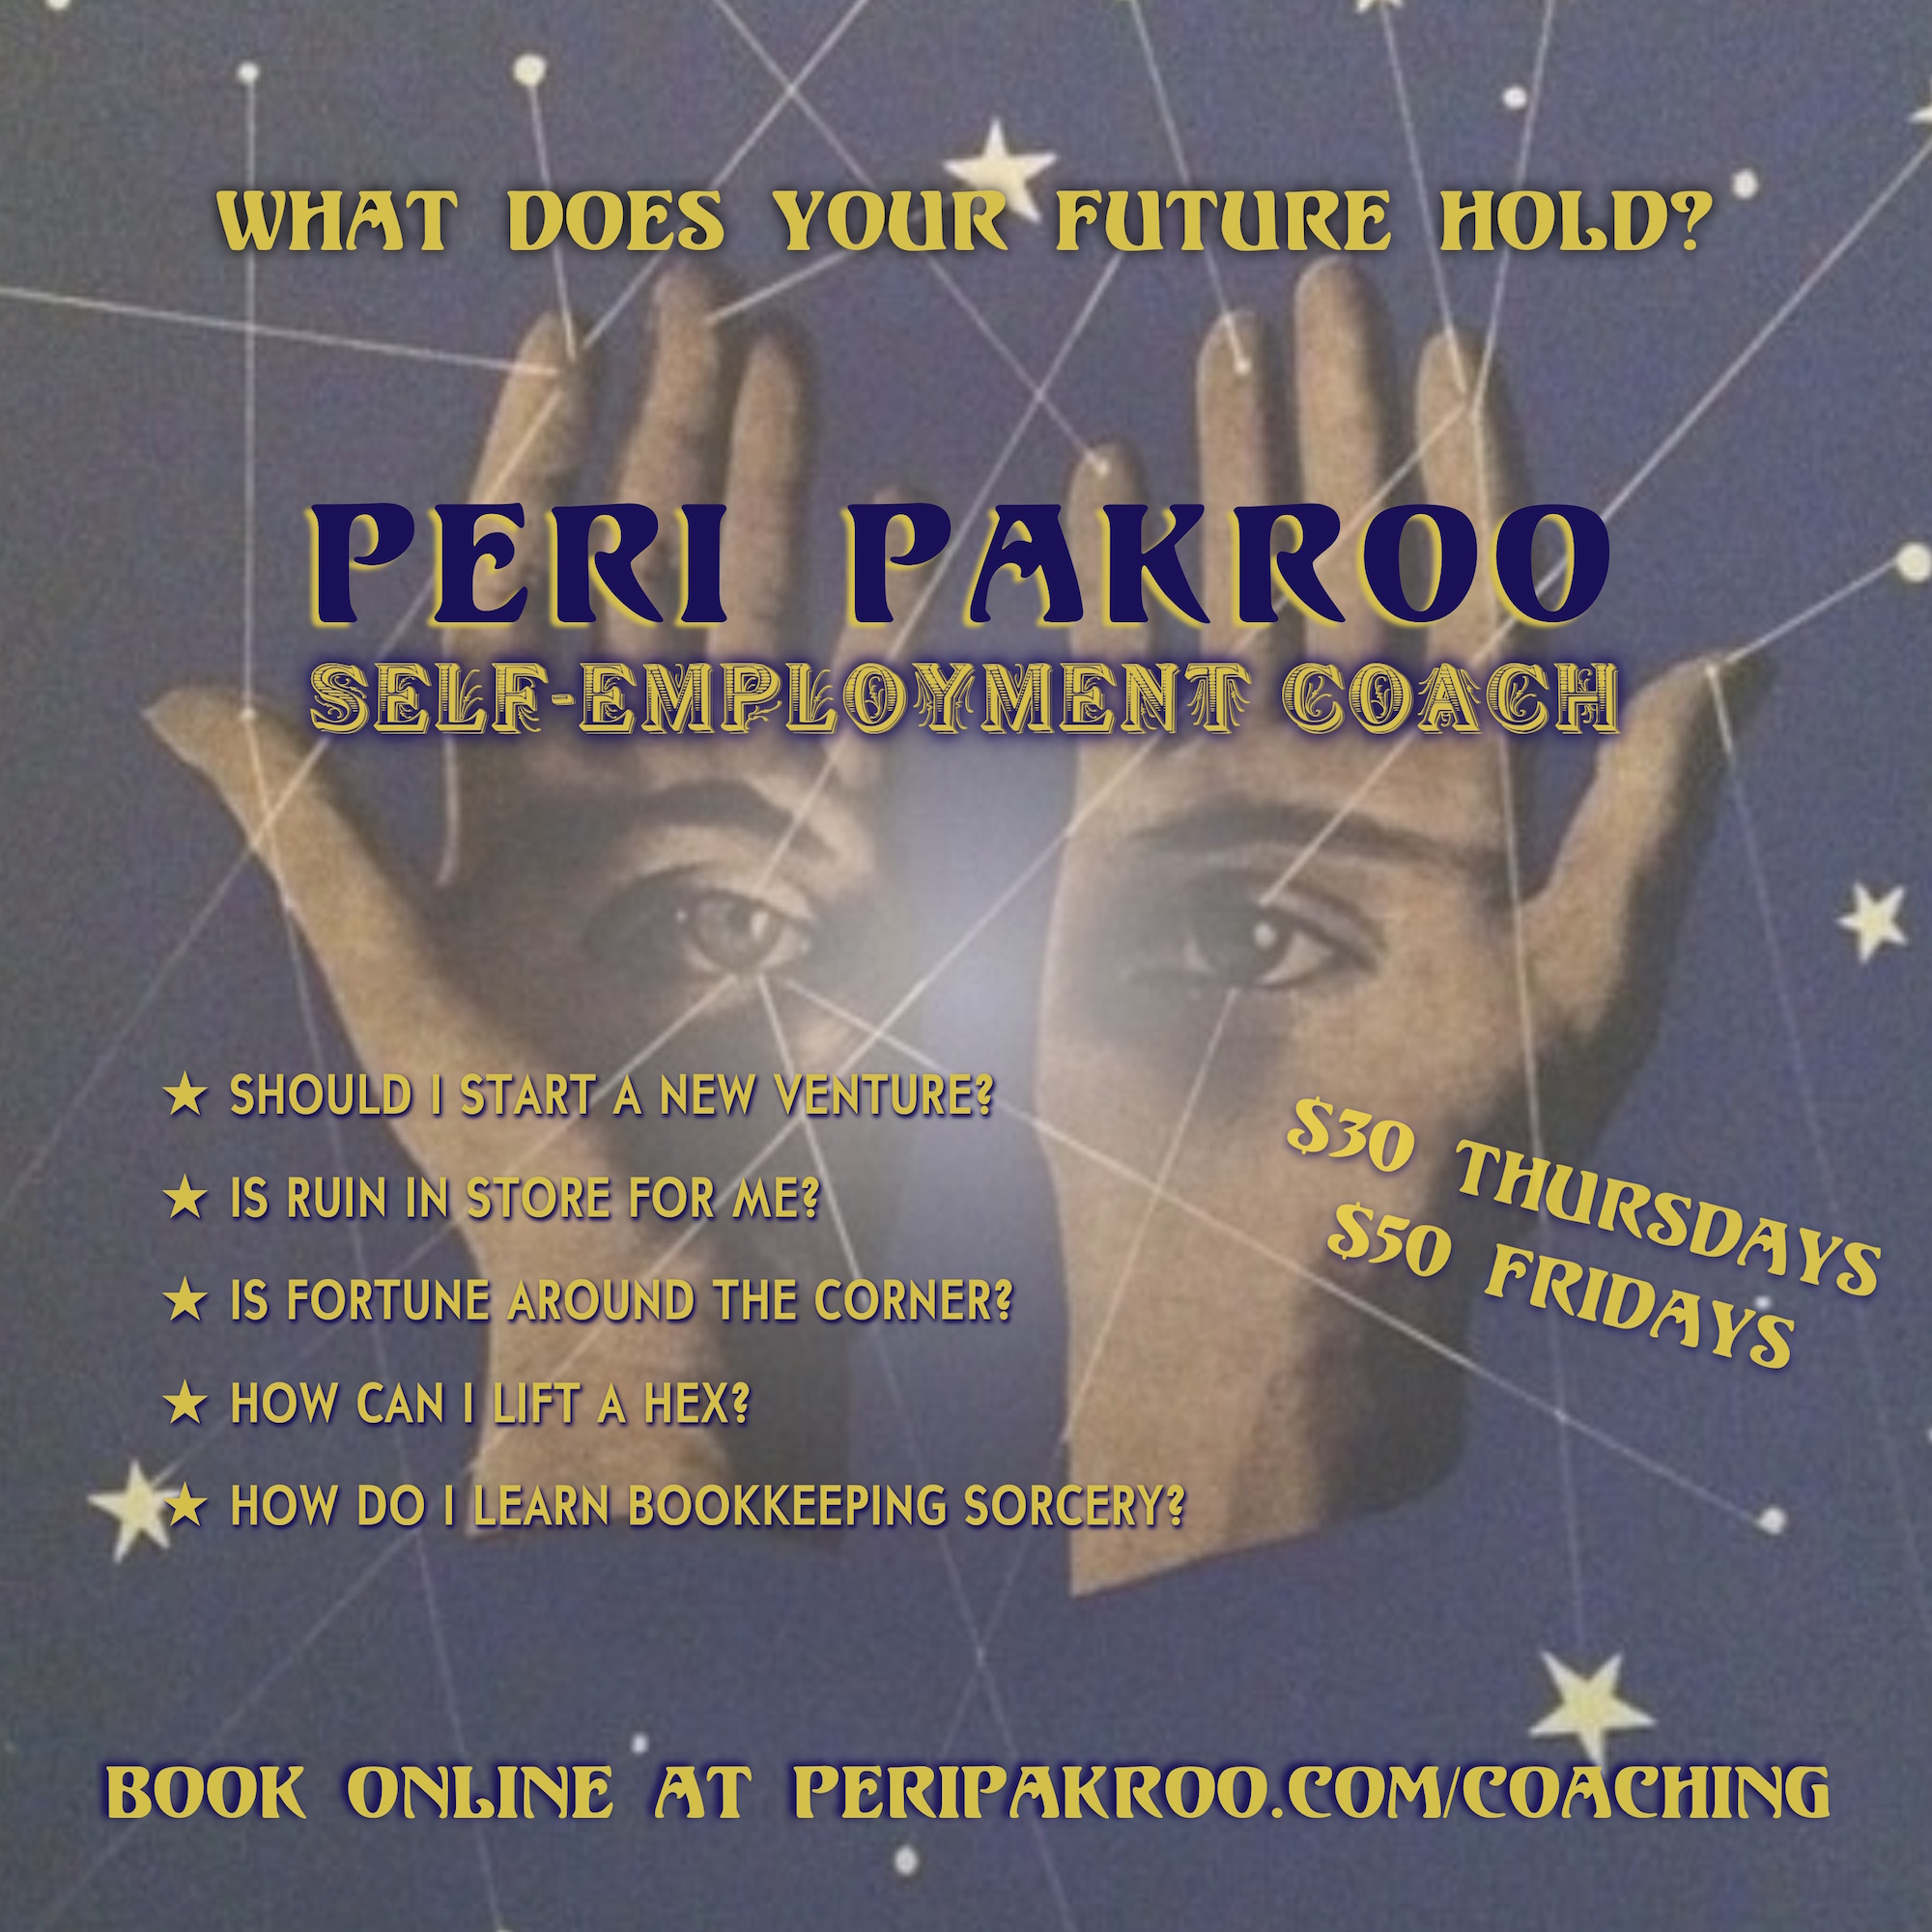 Peri Pakroo, Self-Employment Coach